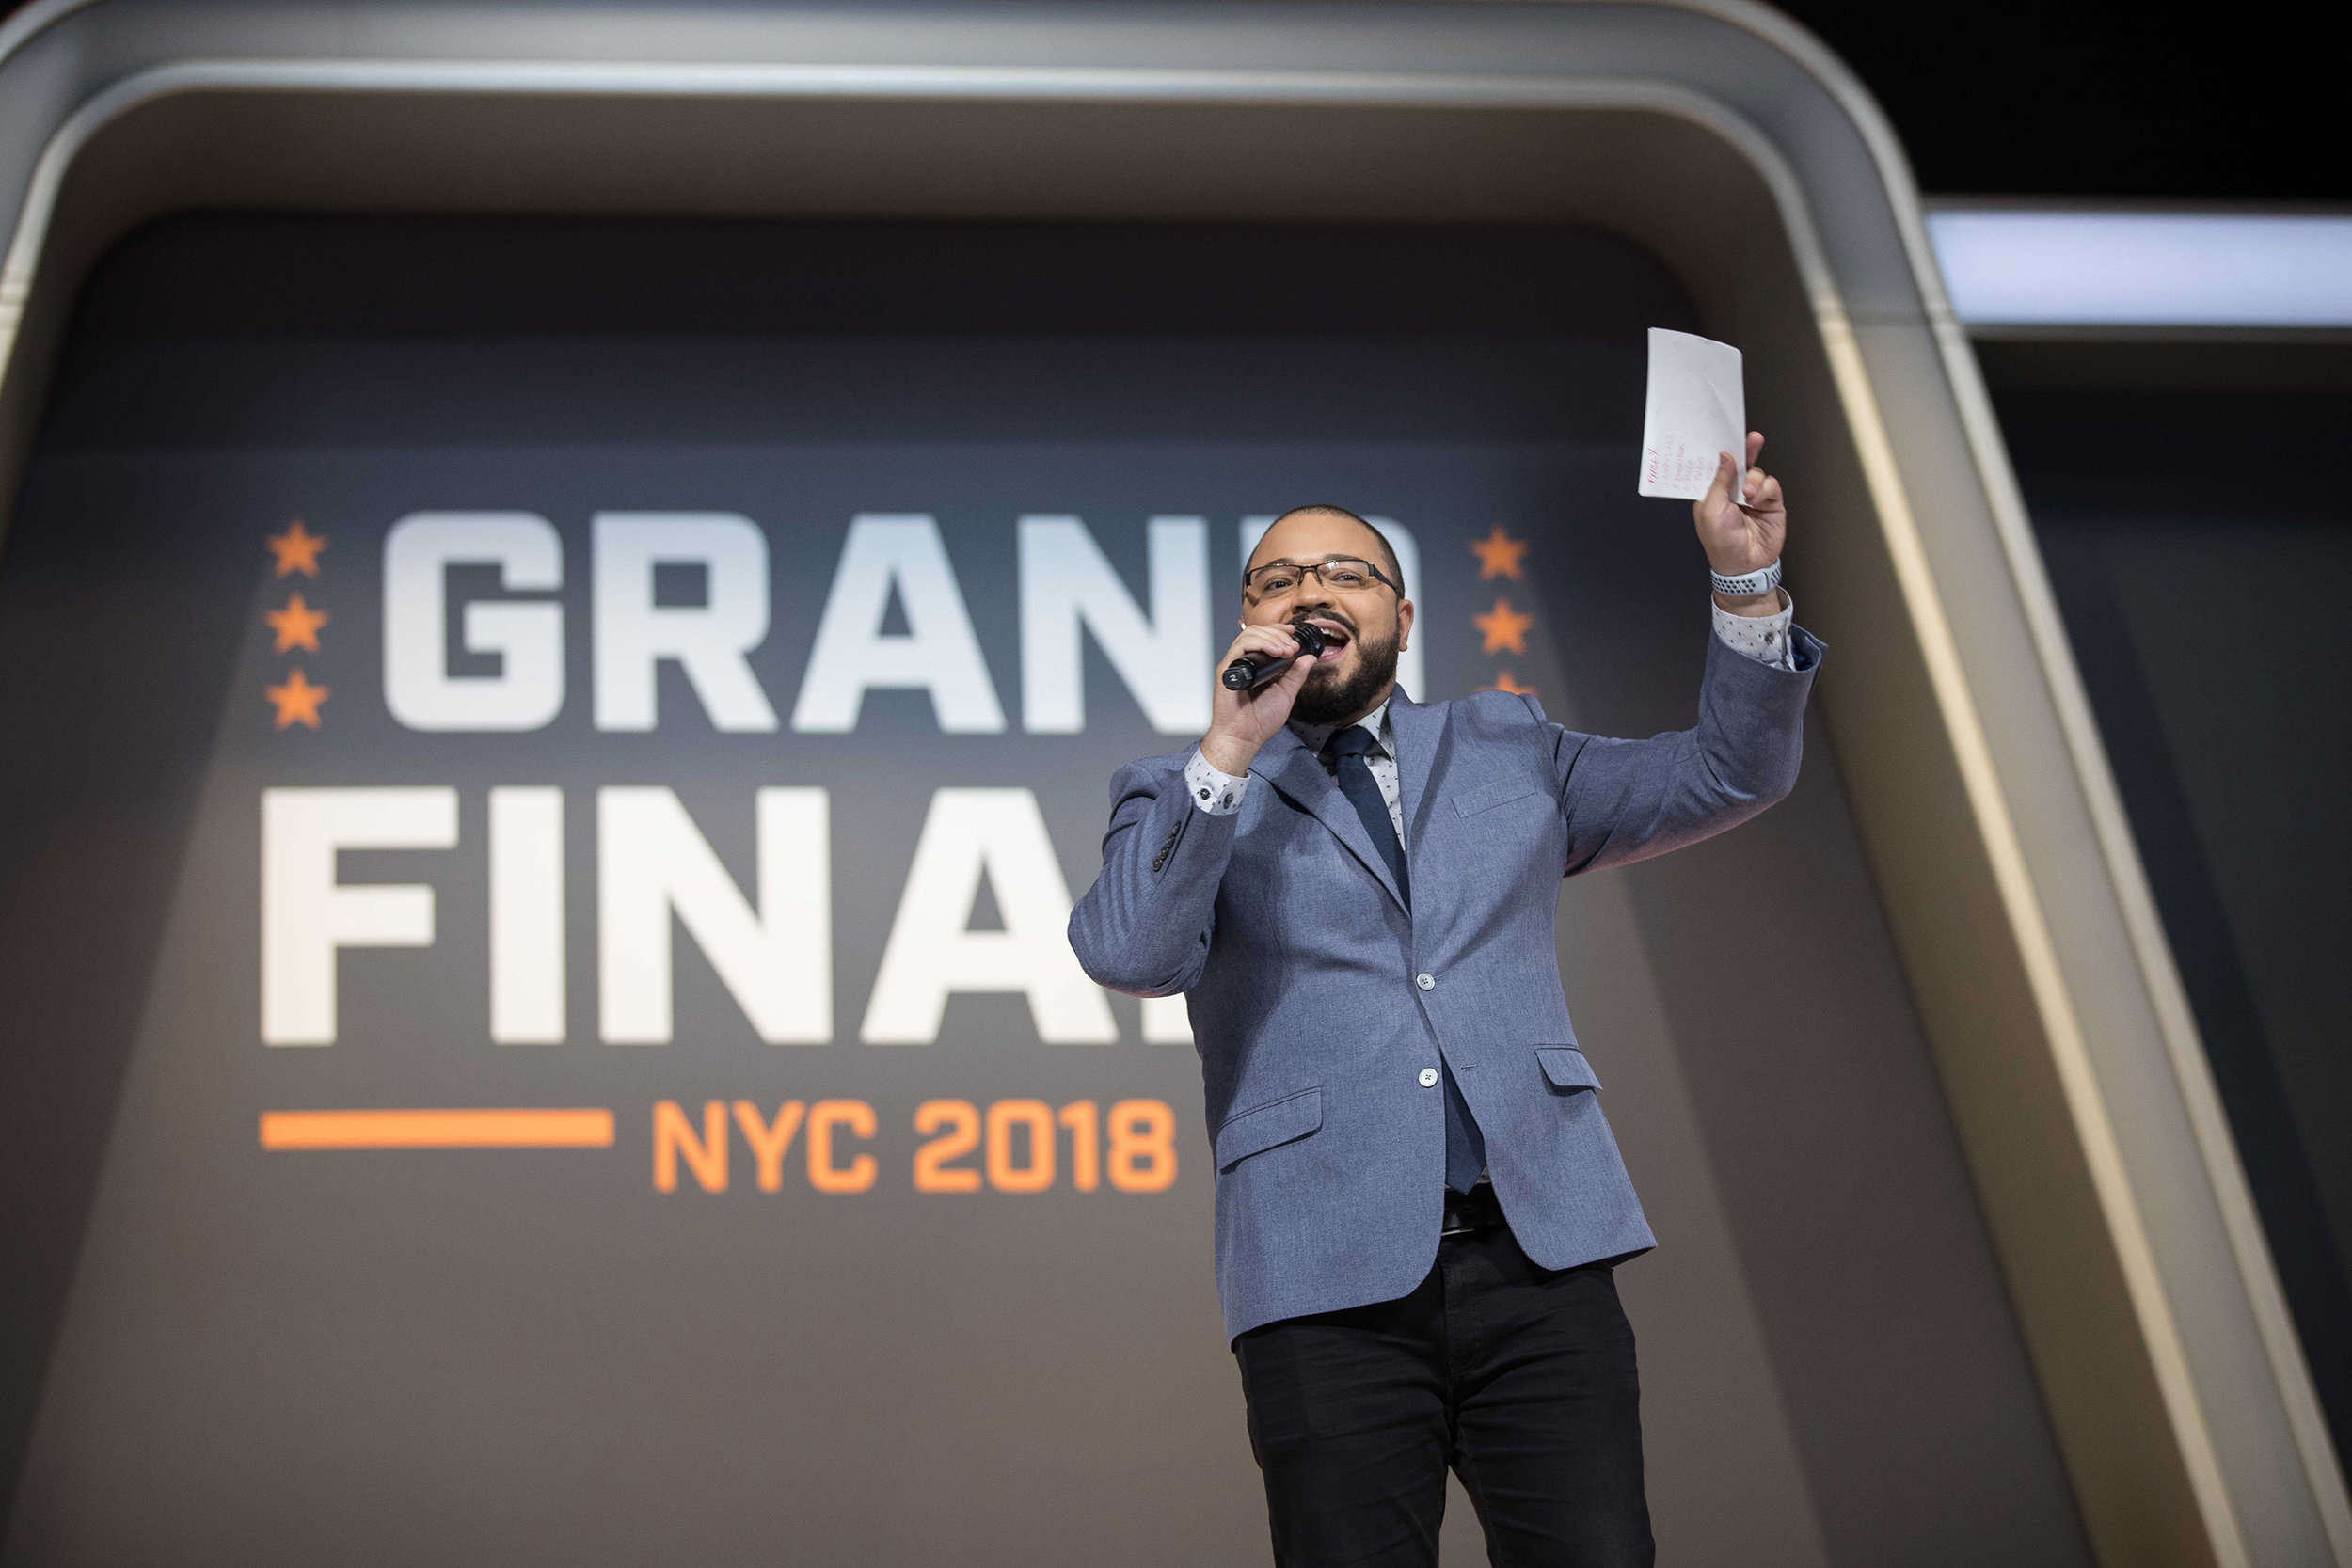 Overwatch League Grand Finals, Alex 'Goldenboy' Mendez announcing London Spitfire and Philadelphia Fusion before championship round at Barclays Center on July 27, 2018 in Brooklyn, New York.  Photo by Hannah Smith / ESPAT Media